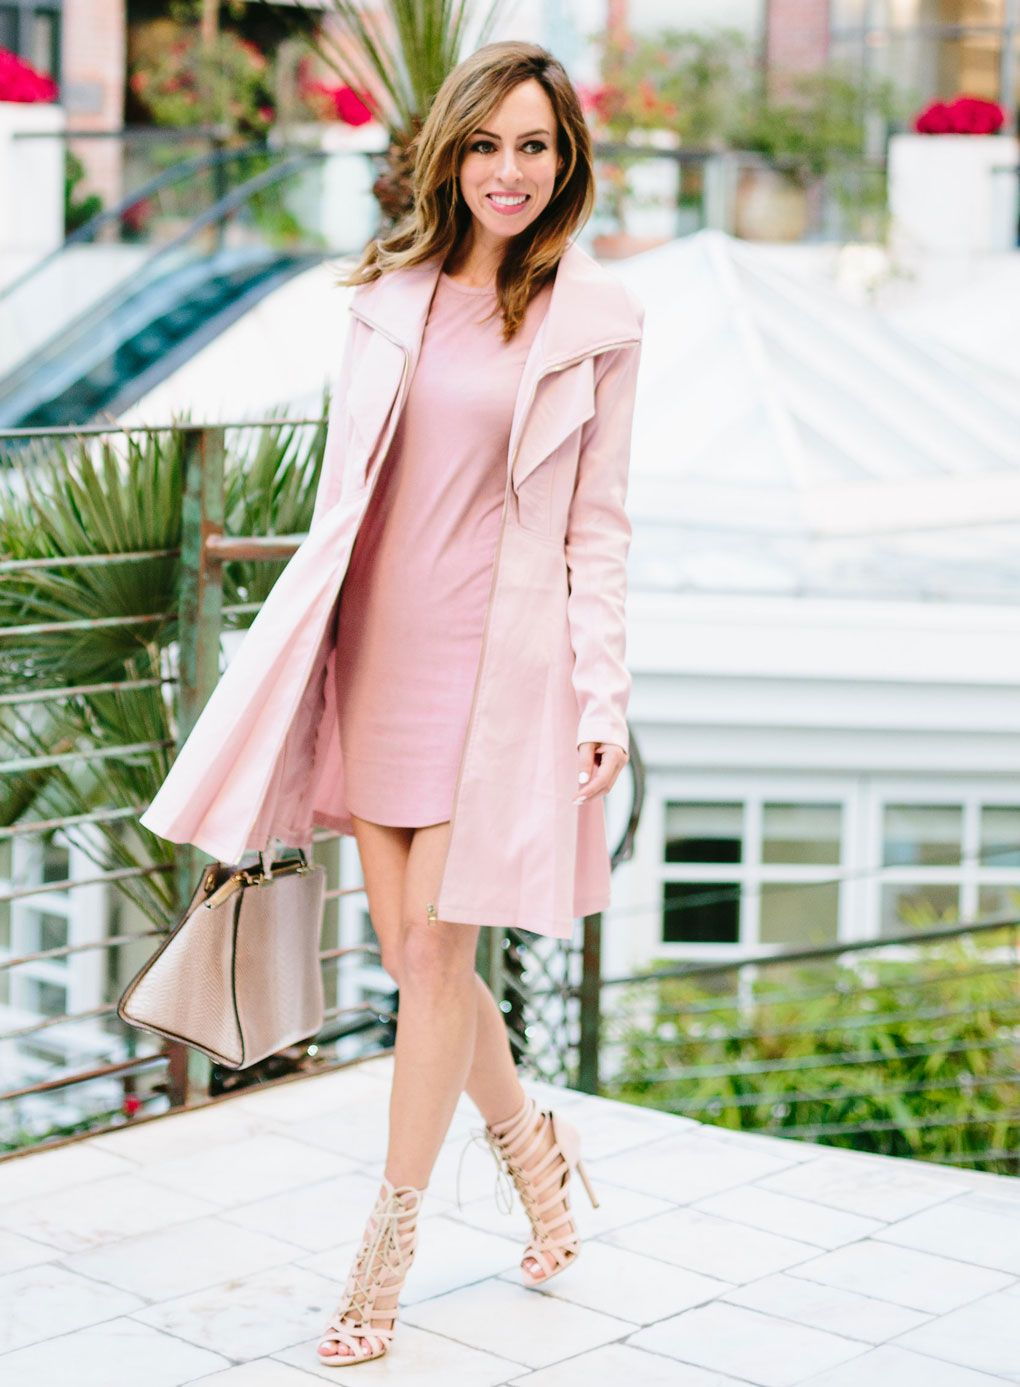 Chic 16 Windsor 200 Gift Card Giveaway Light Pink Jacket Pink Pleated Skirt Fashion [ 1387 x 1020 Pixel ]